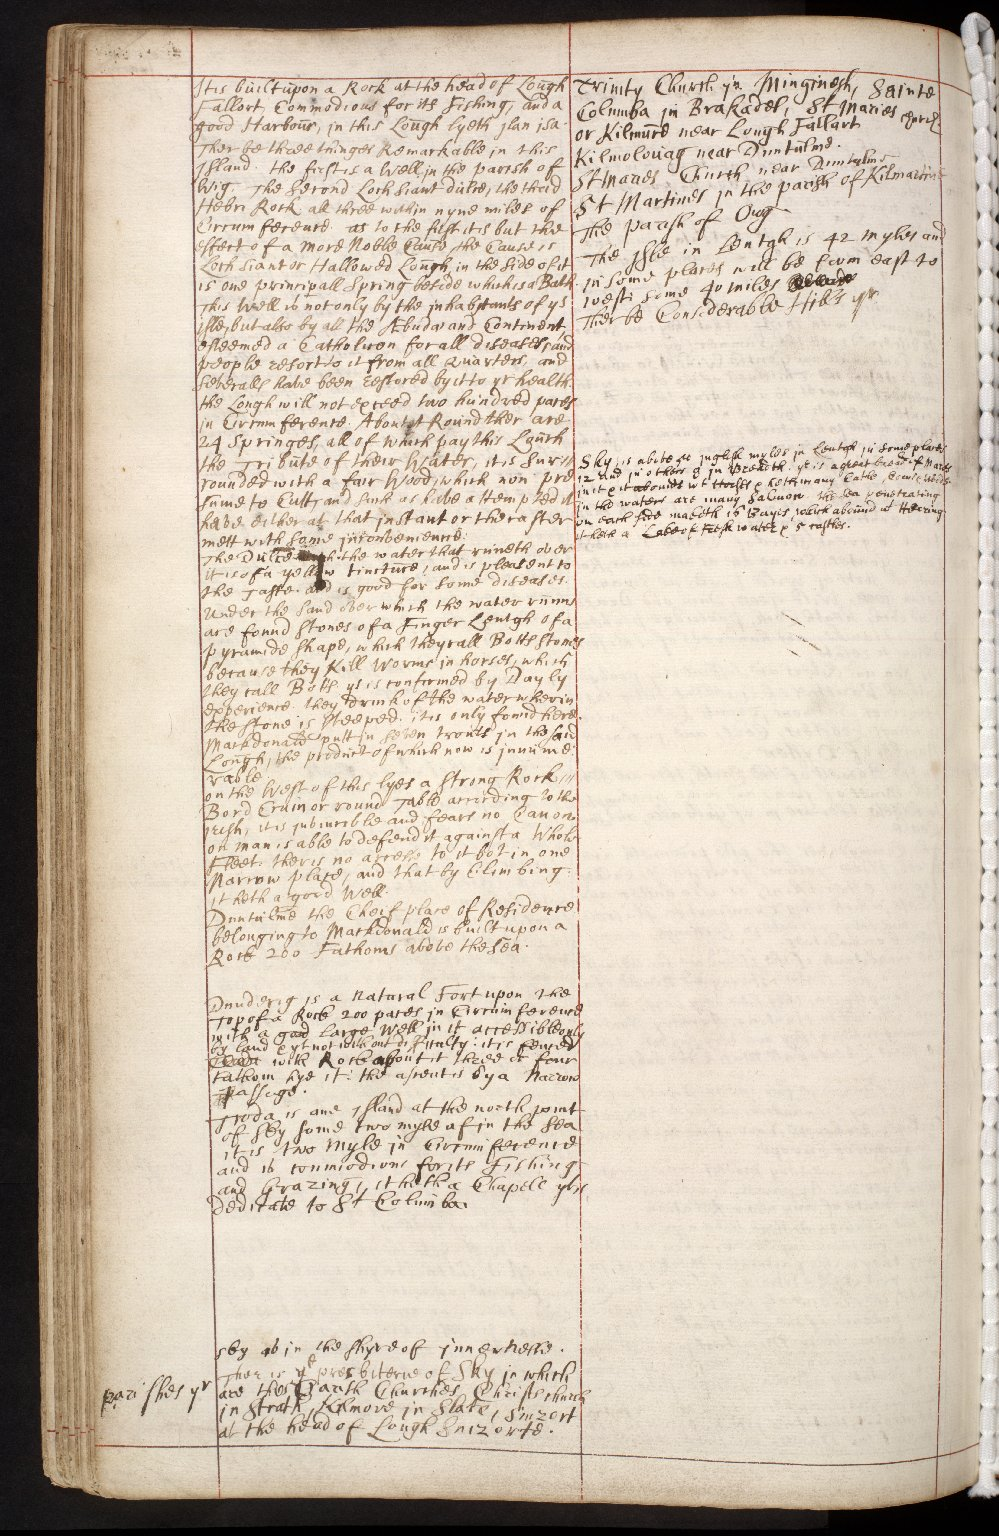 Atlas Scoticus, or a Description of Scotland Ancient and Modern. [223 of 259]